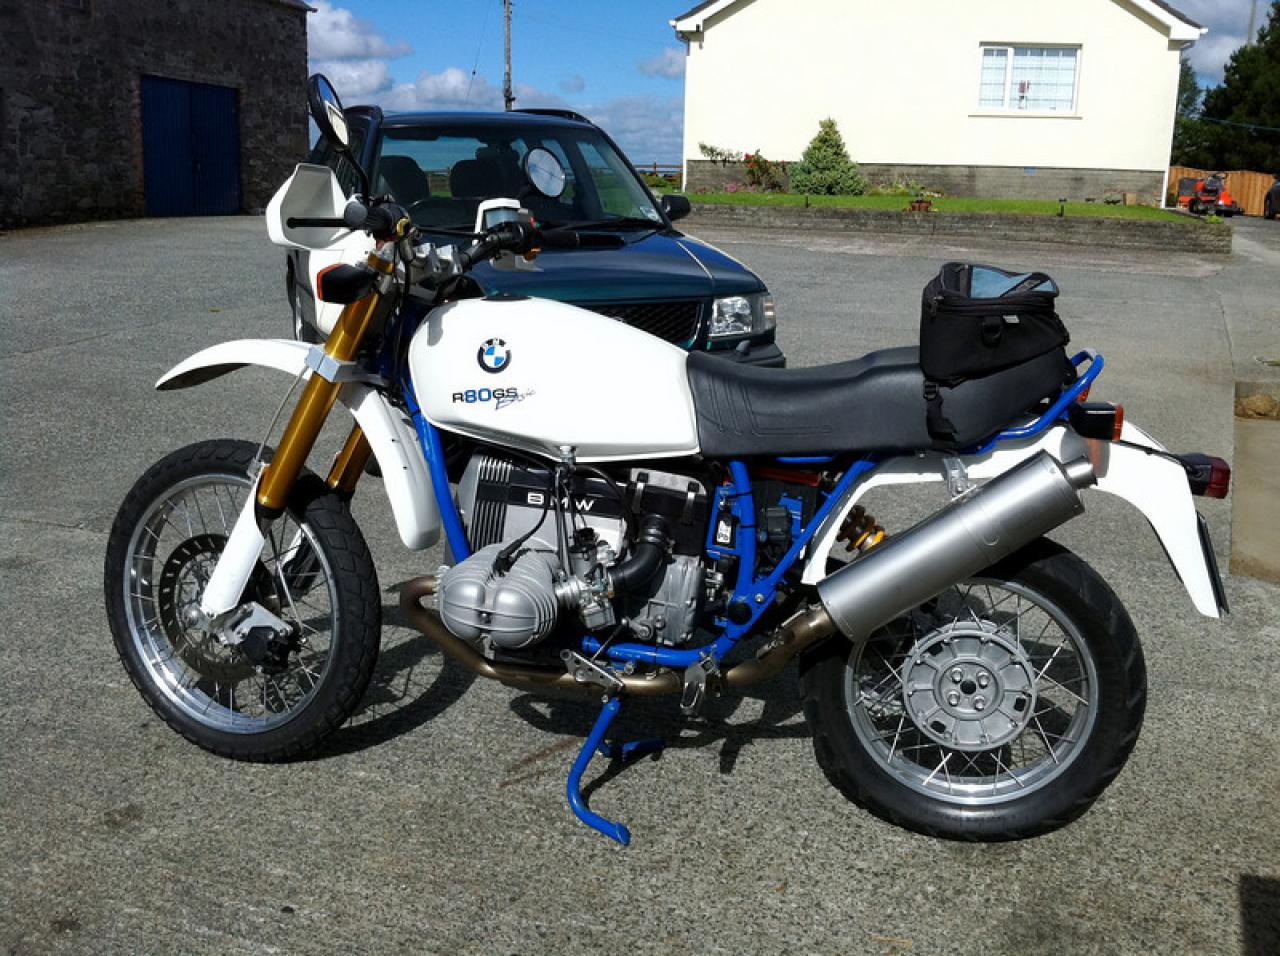 BMW R850RT 1997 images #165365